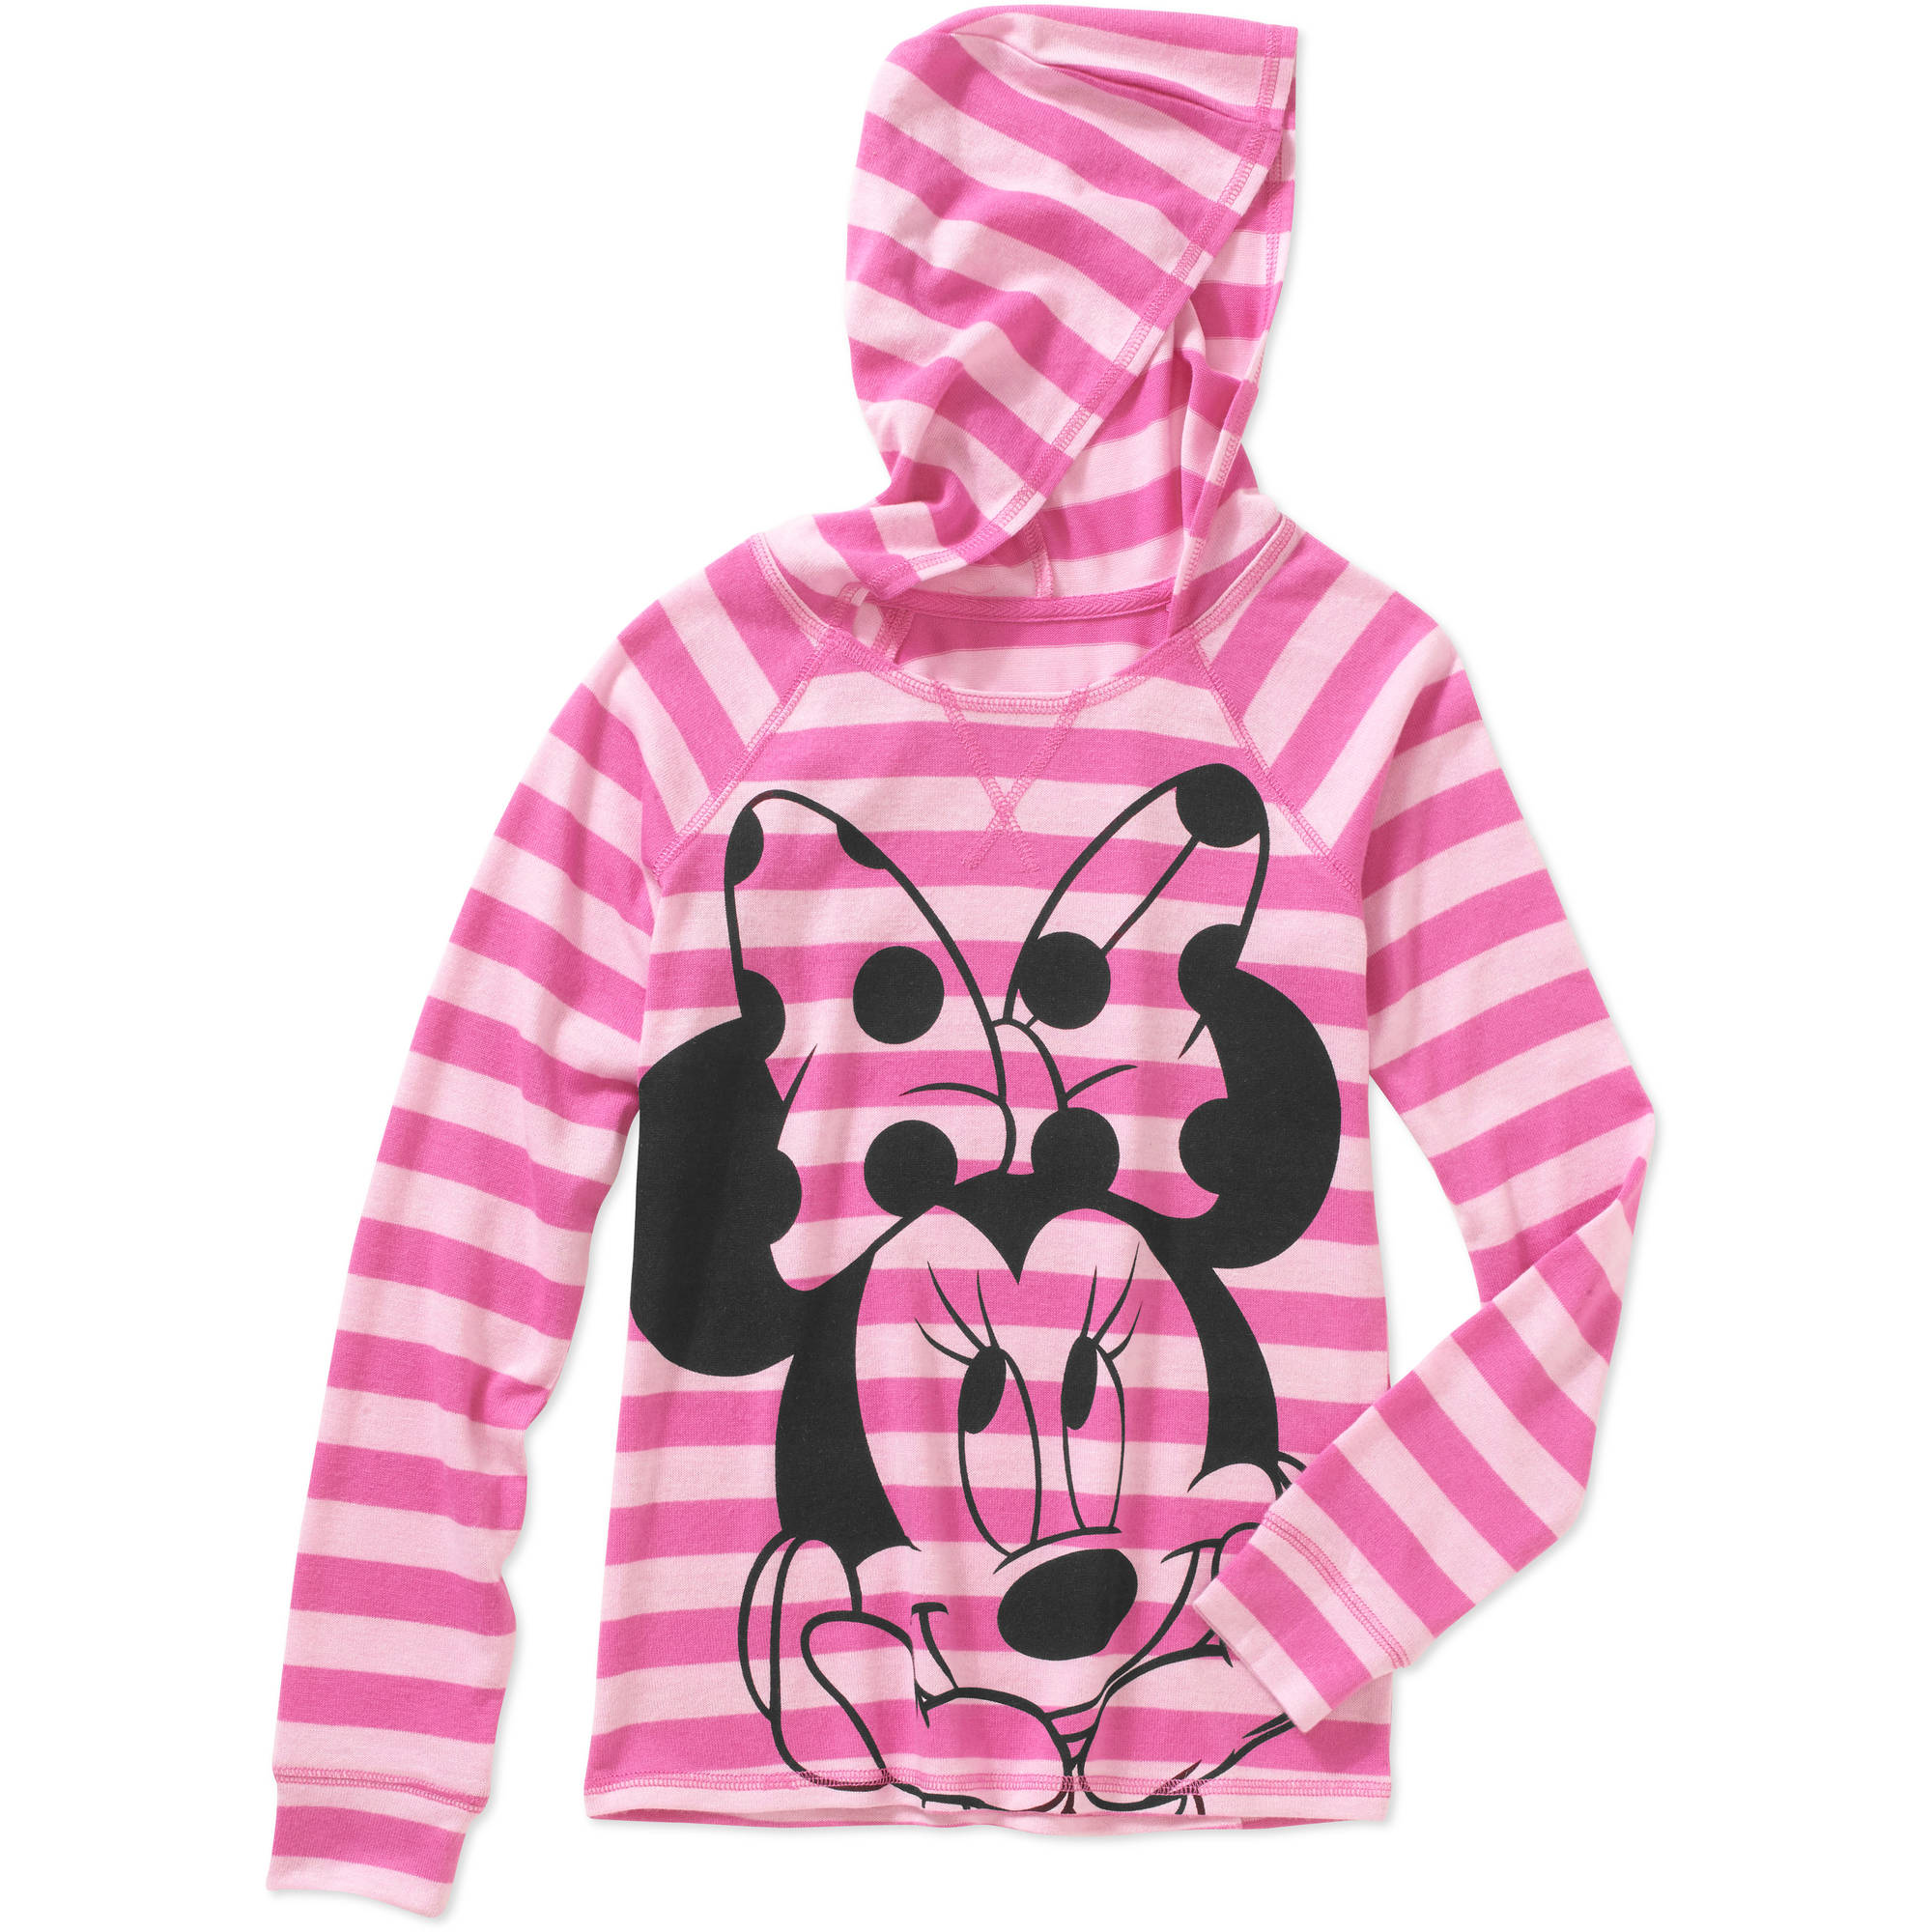 Minnie Mouse Girls' Long Sleeve Hacci Top with Hood